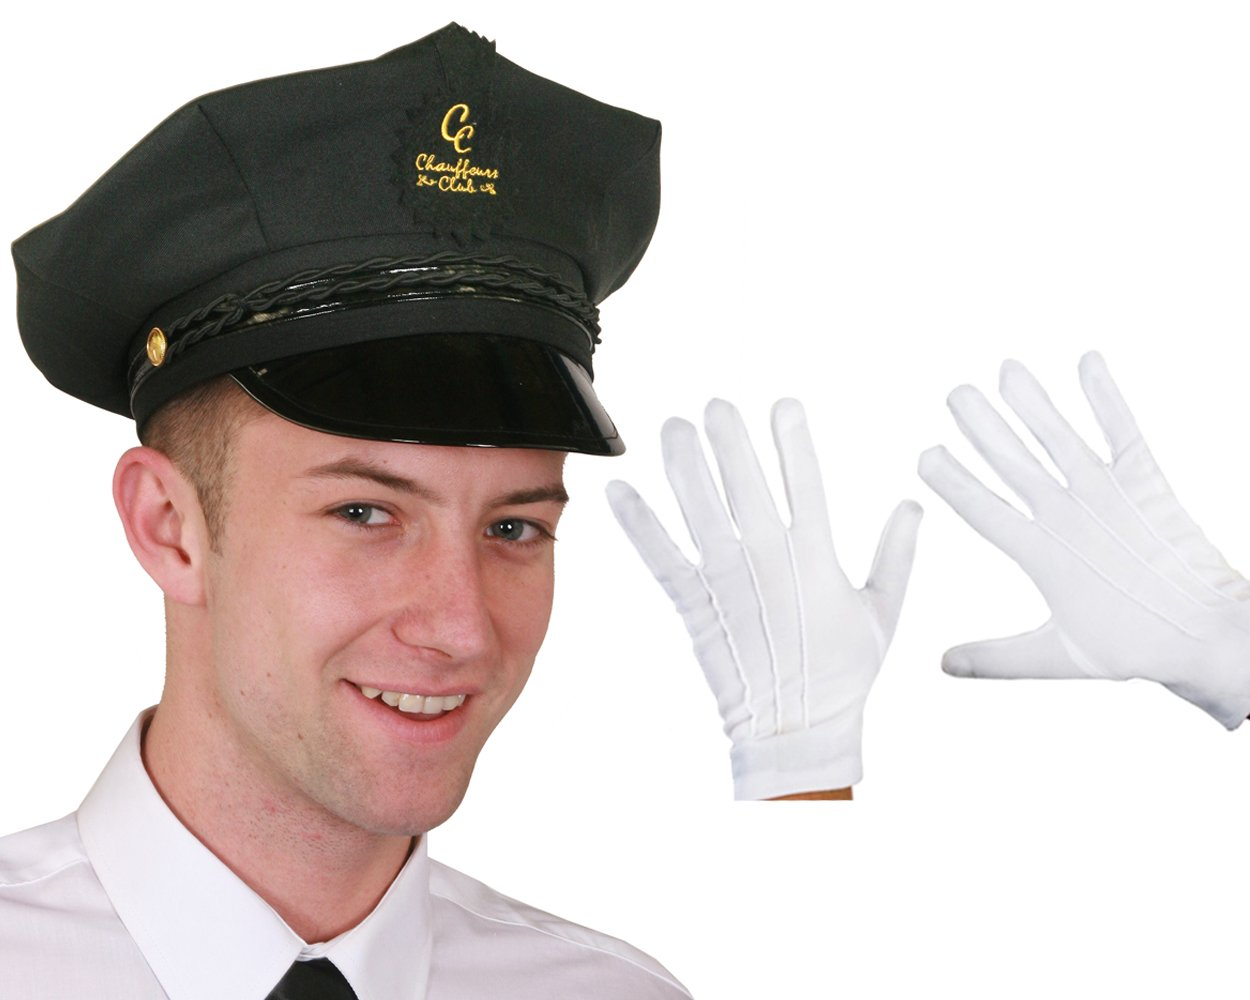 black chauffeur hat fancy dress costume accessory celebrity black chauffeur hat and white gloves fancy dress costume accessory celebrity personal limo driver valet professional